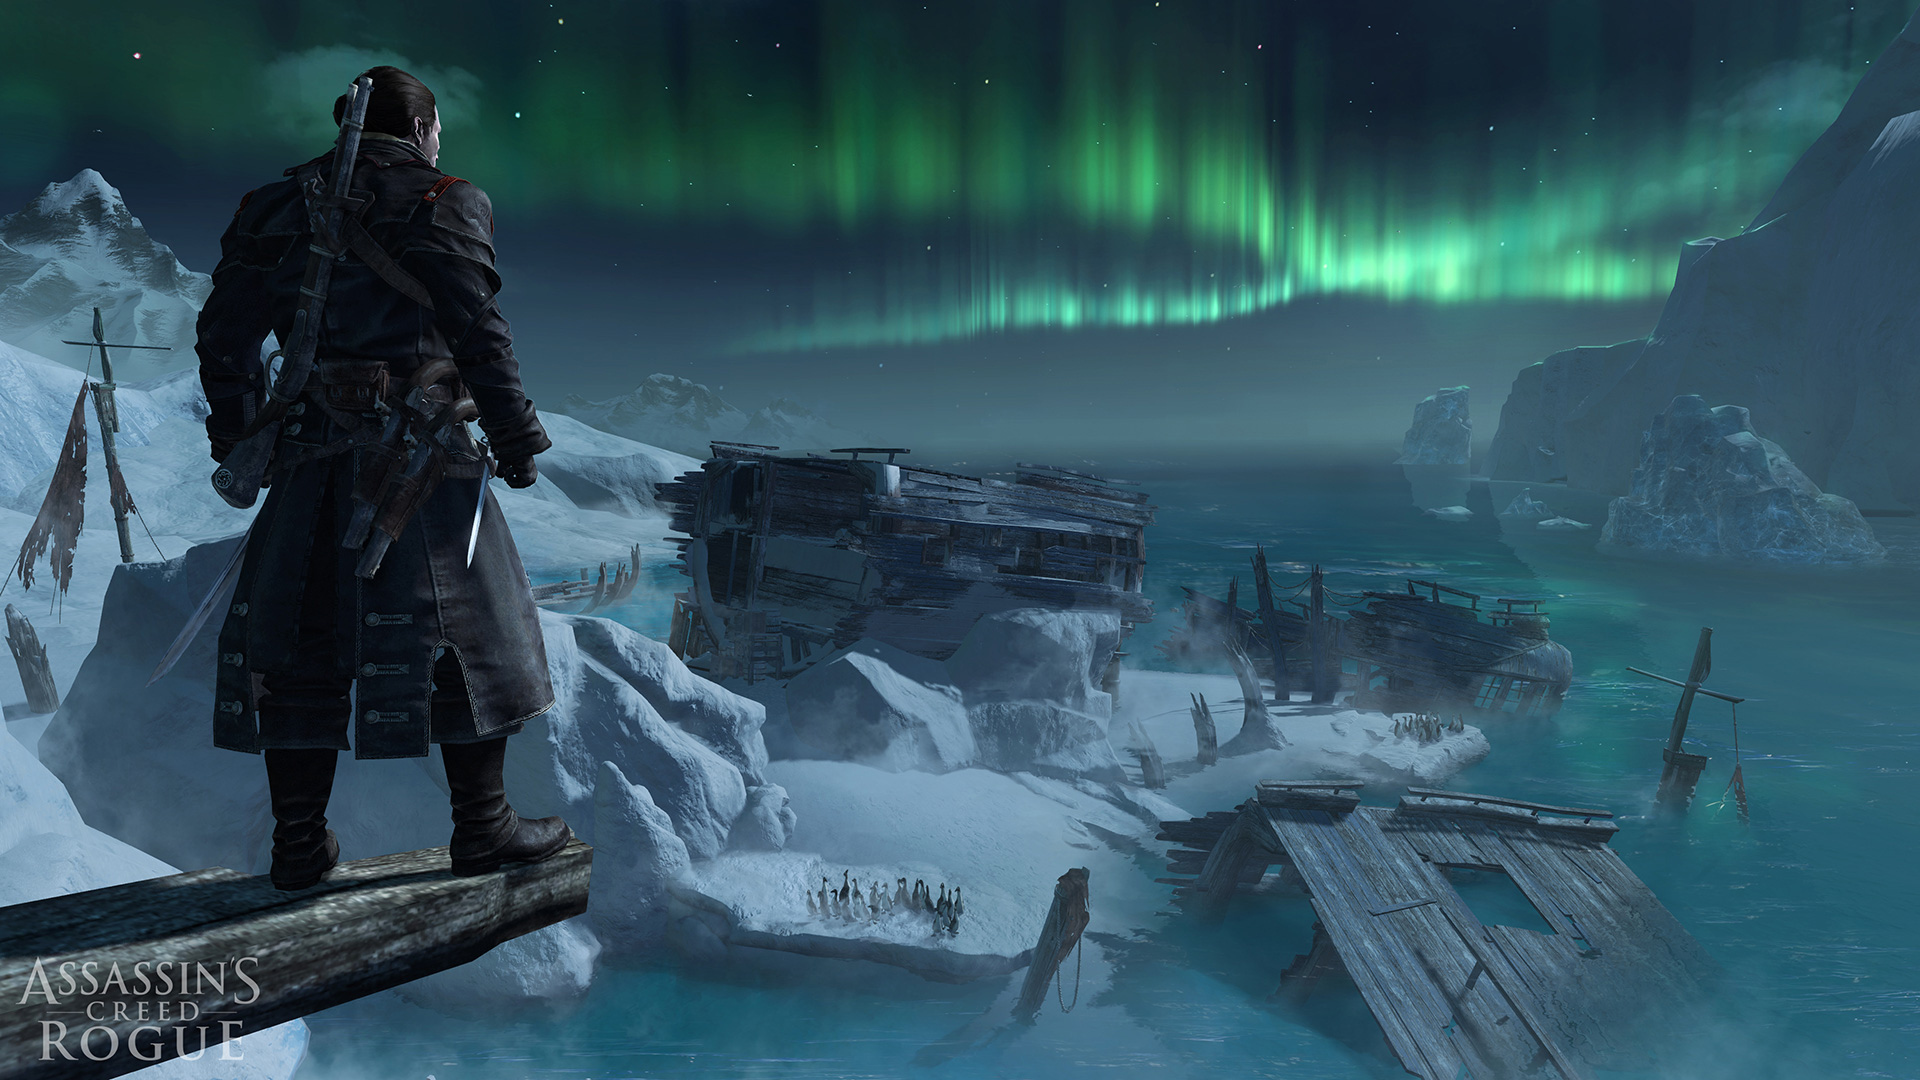 Assassin's Creed: Rogue Review (PS3, Xbox 360)